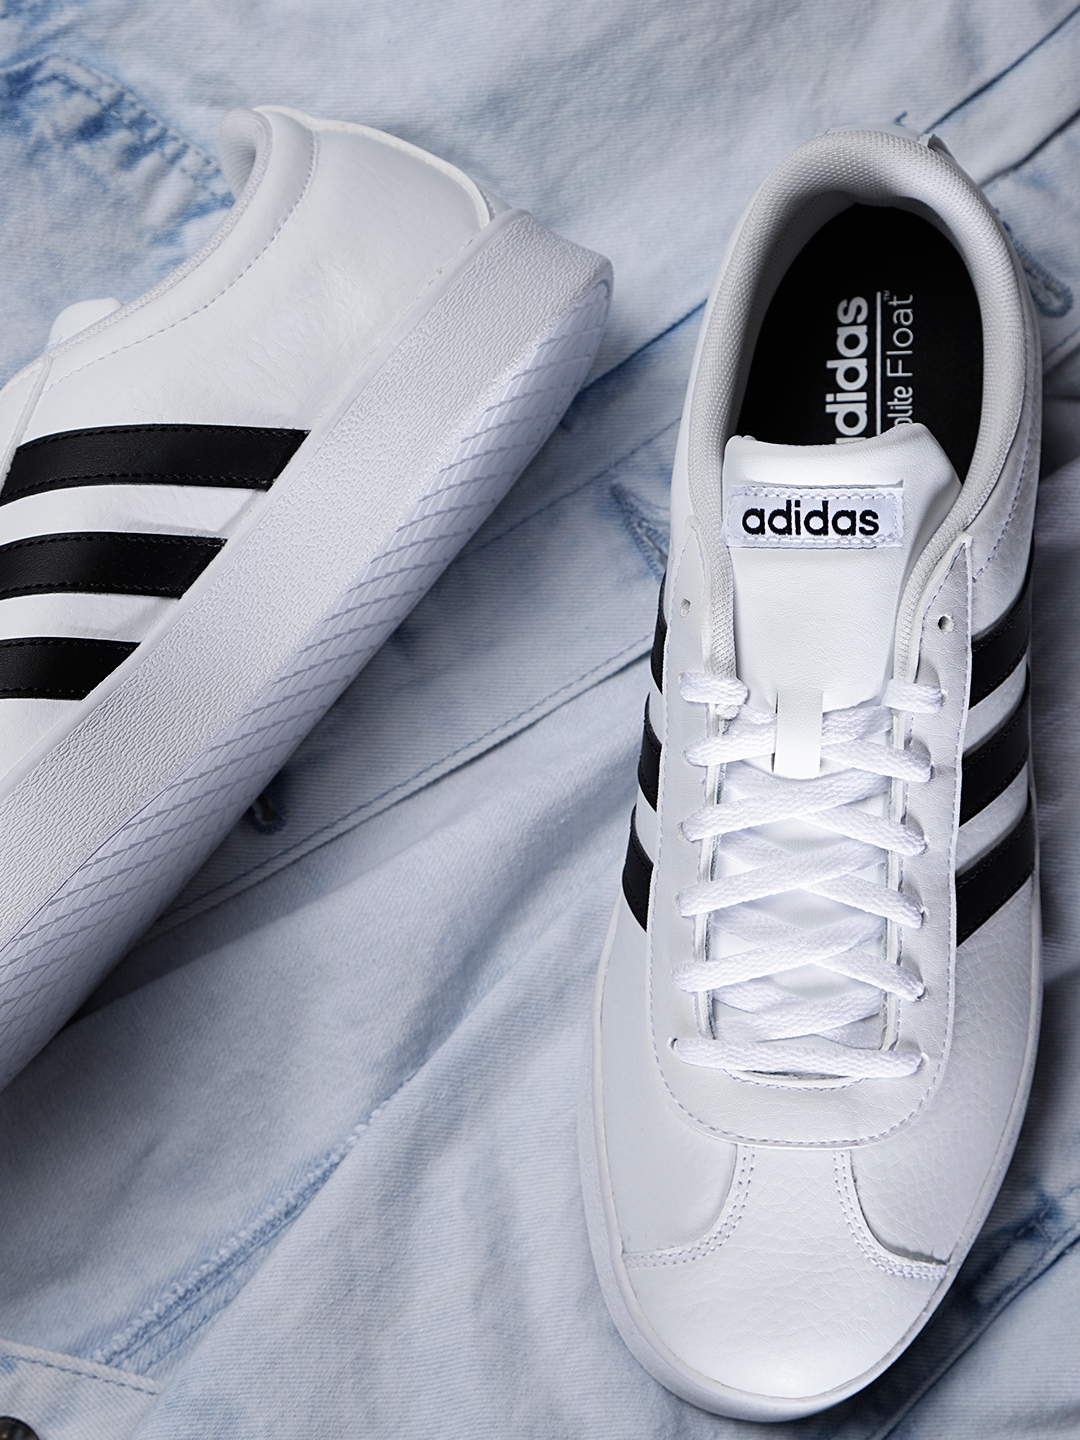 490265cde7306 ADIDAS Originals Men White VL Court 2.0 Leather Skateboarding Shoes. This  product ...